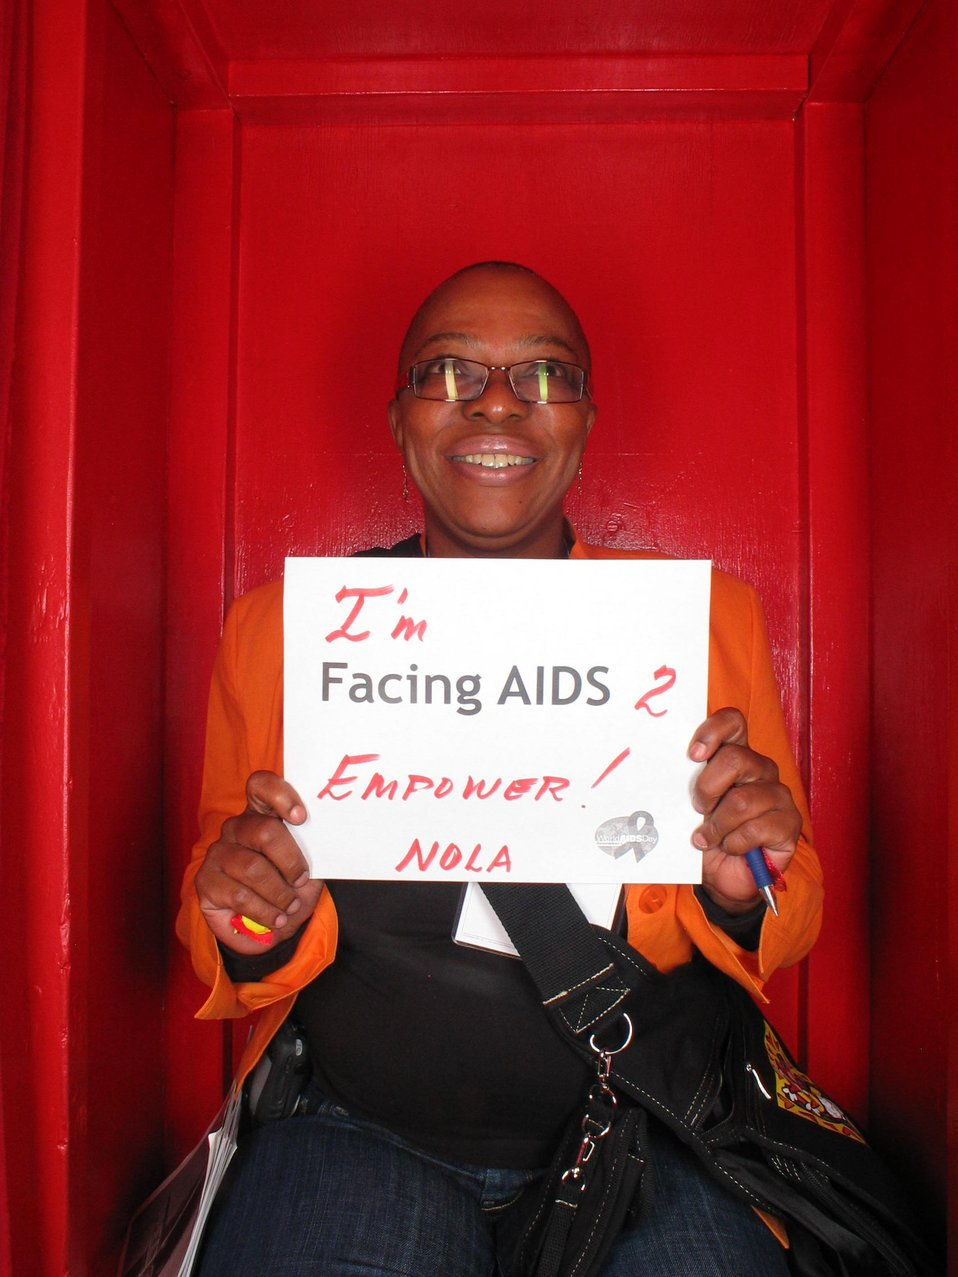 I'm Facing AIDS 2 empower!